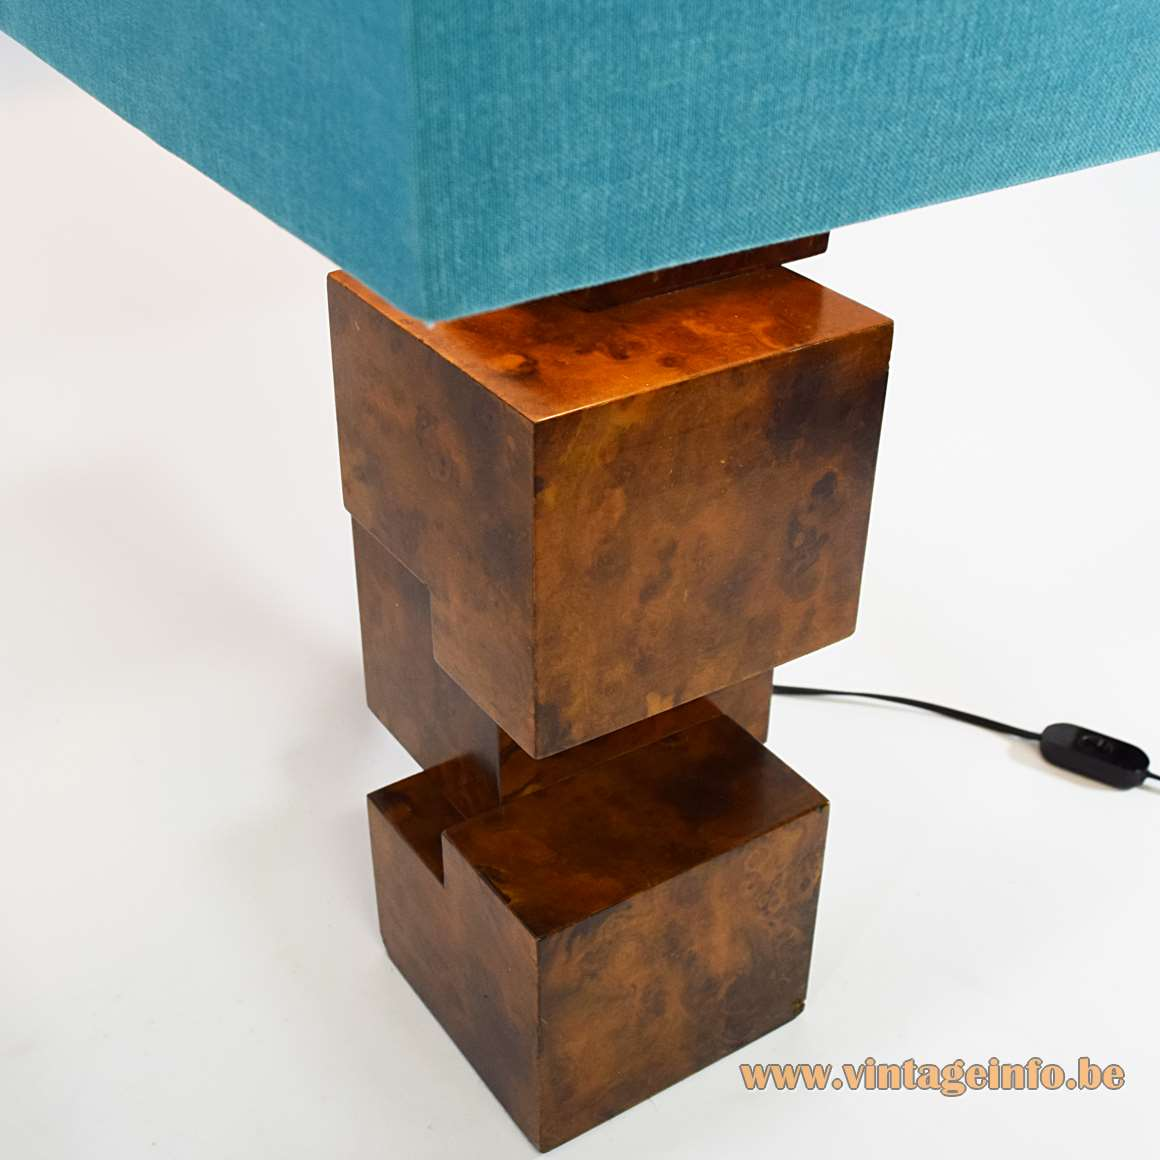 Burr Walnut Cityscape table lamp wood cubes geometric square lampshade 1960s 1970s MCM Italy